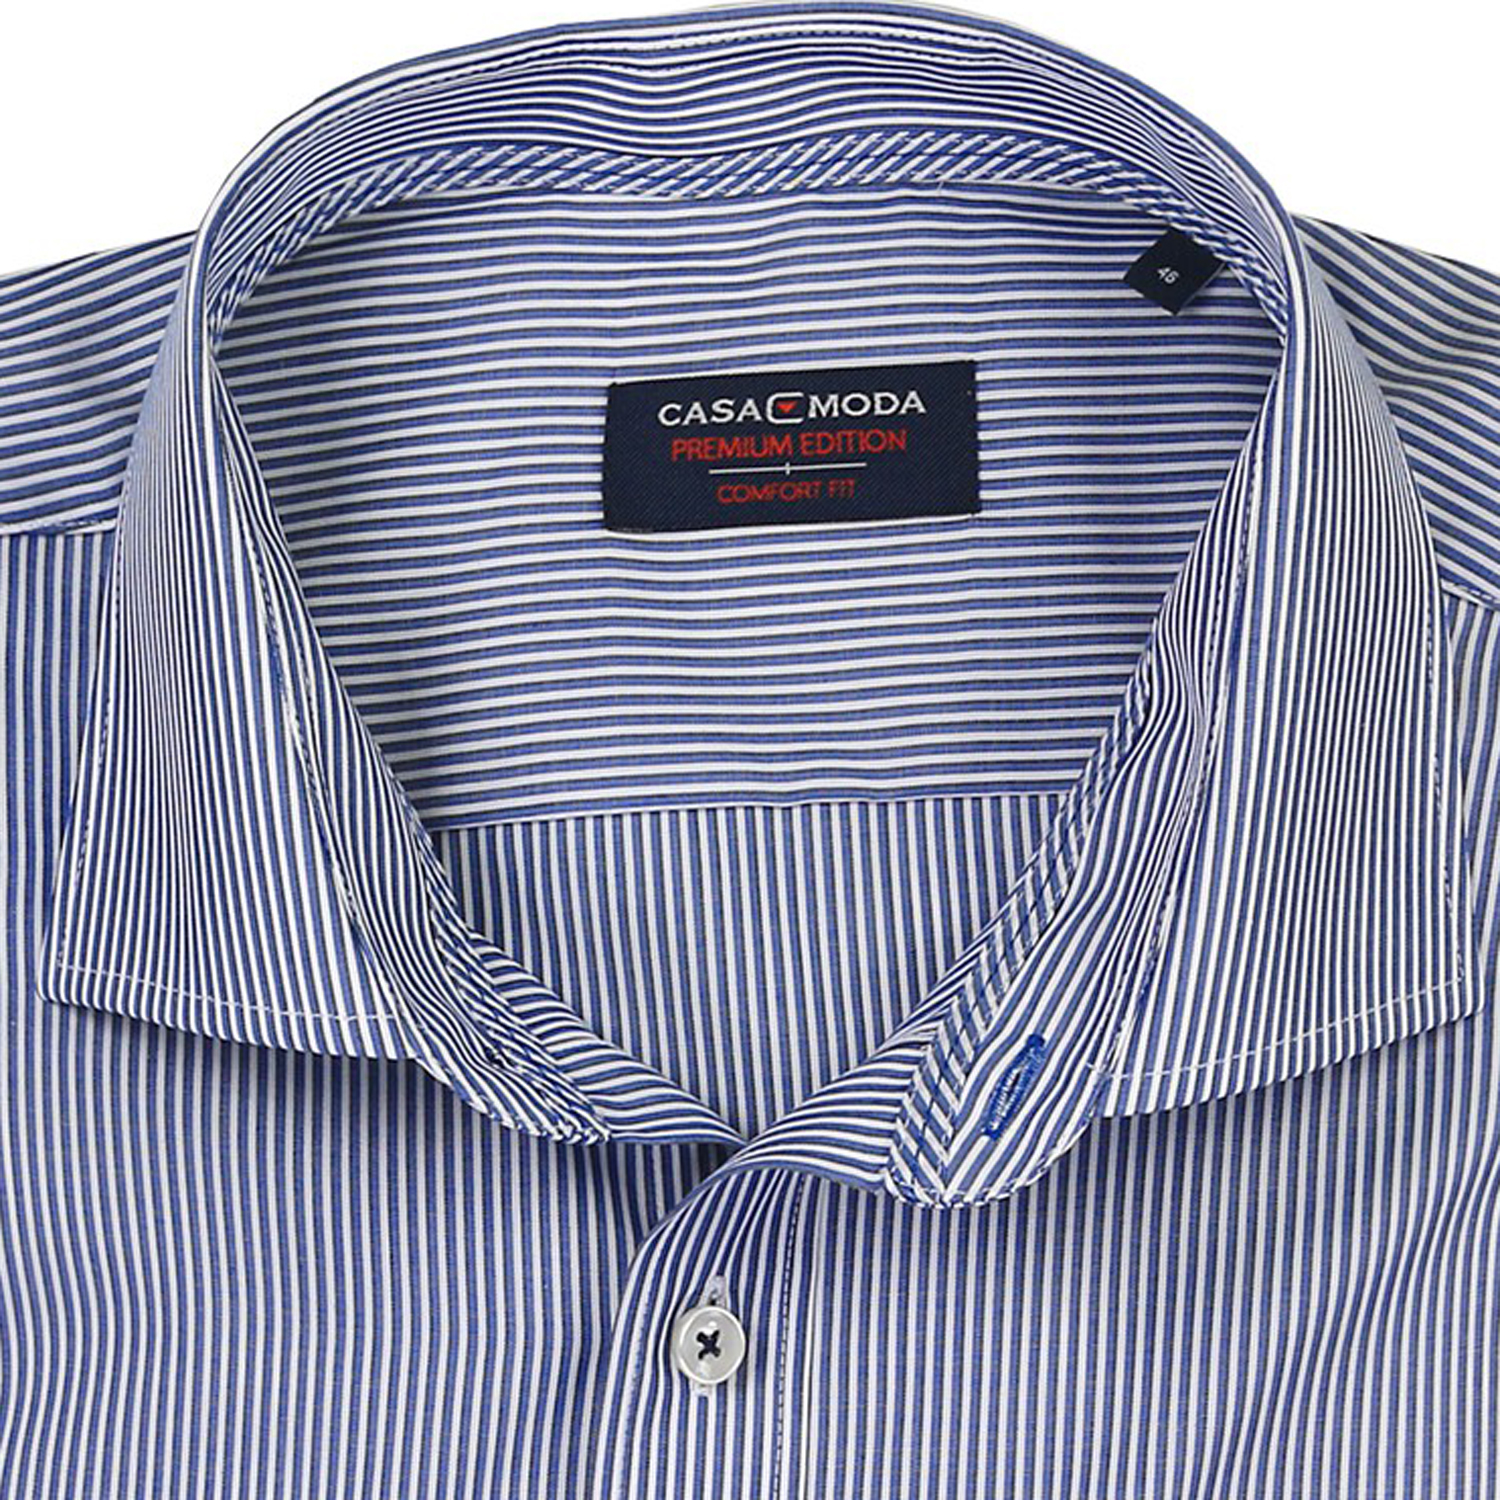 Detail Image to Blue shirt striped by Casamoda in plus size up to 7XL